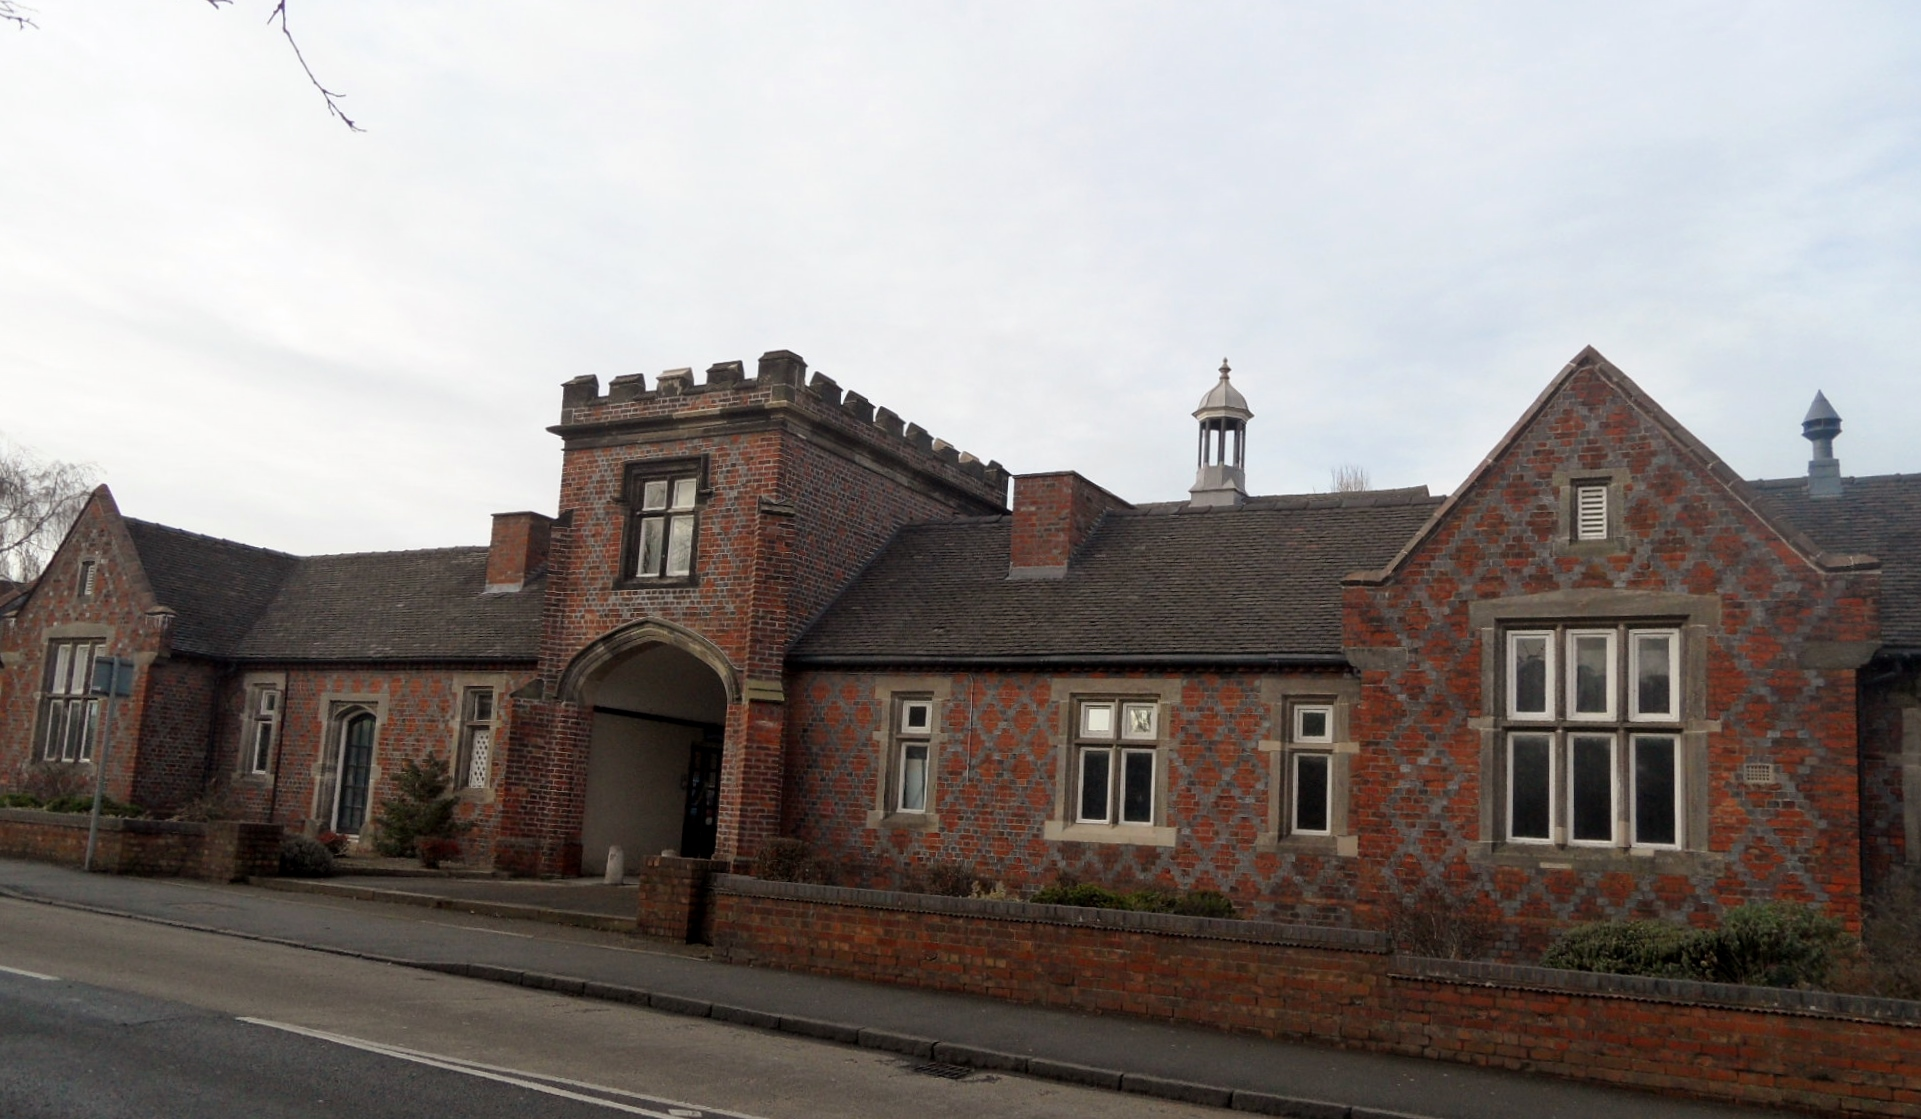 Entrance to the former Workhouse on Trent Valley Road